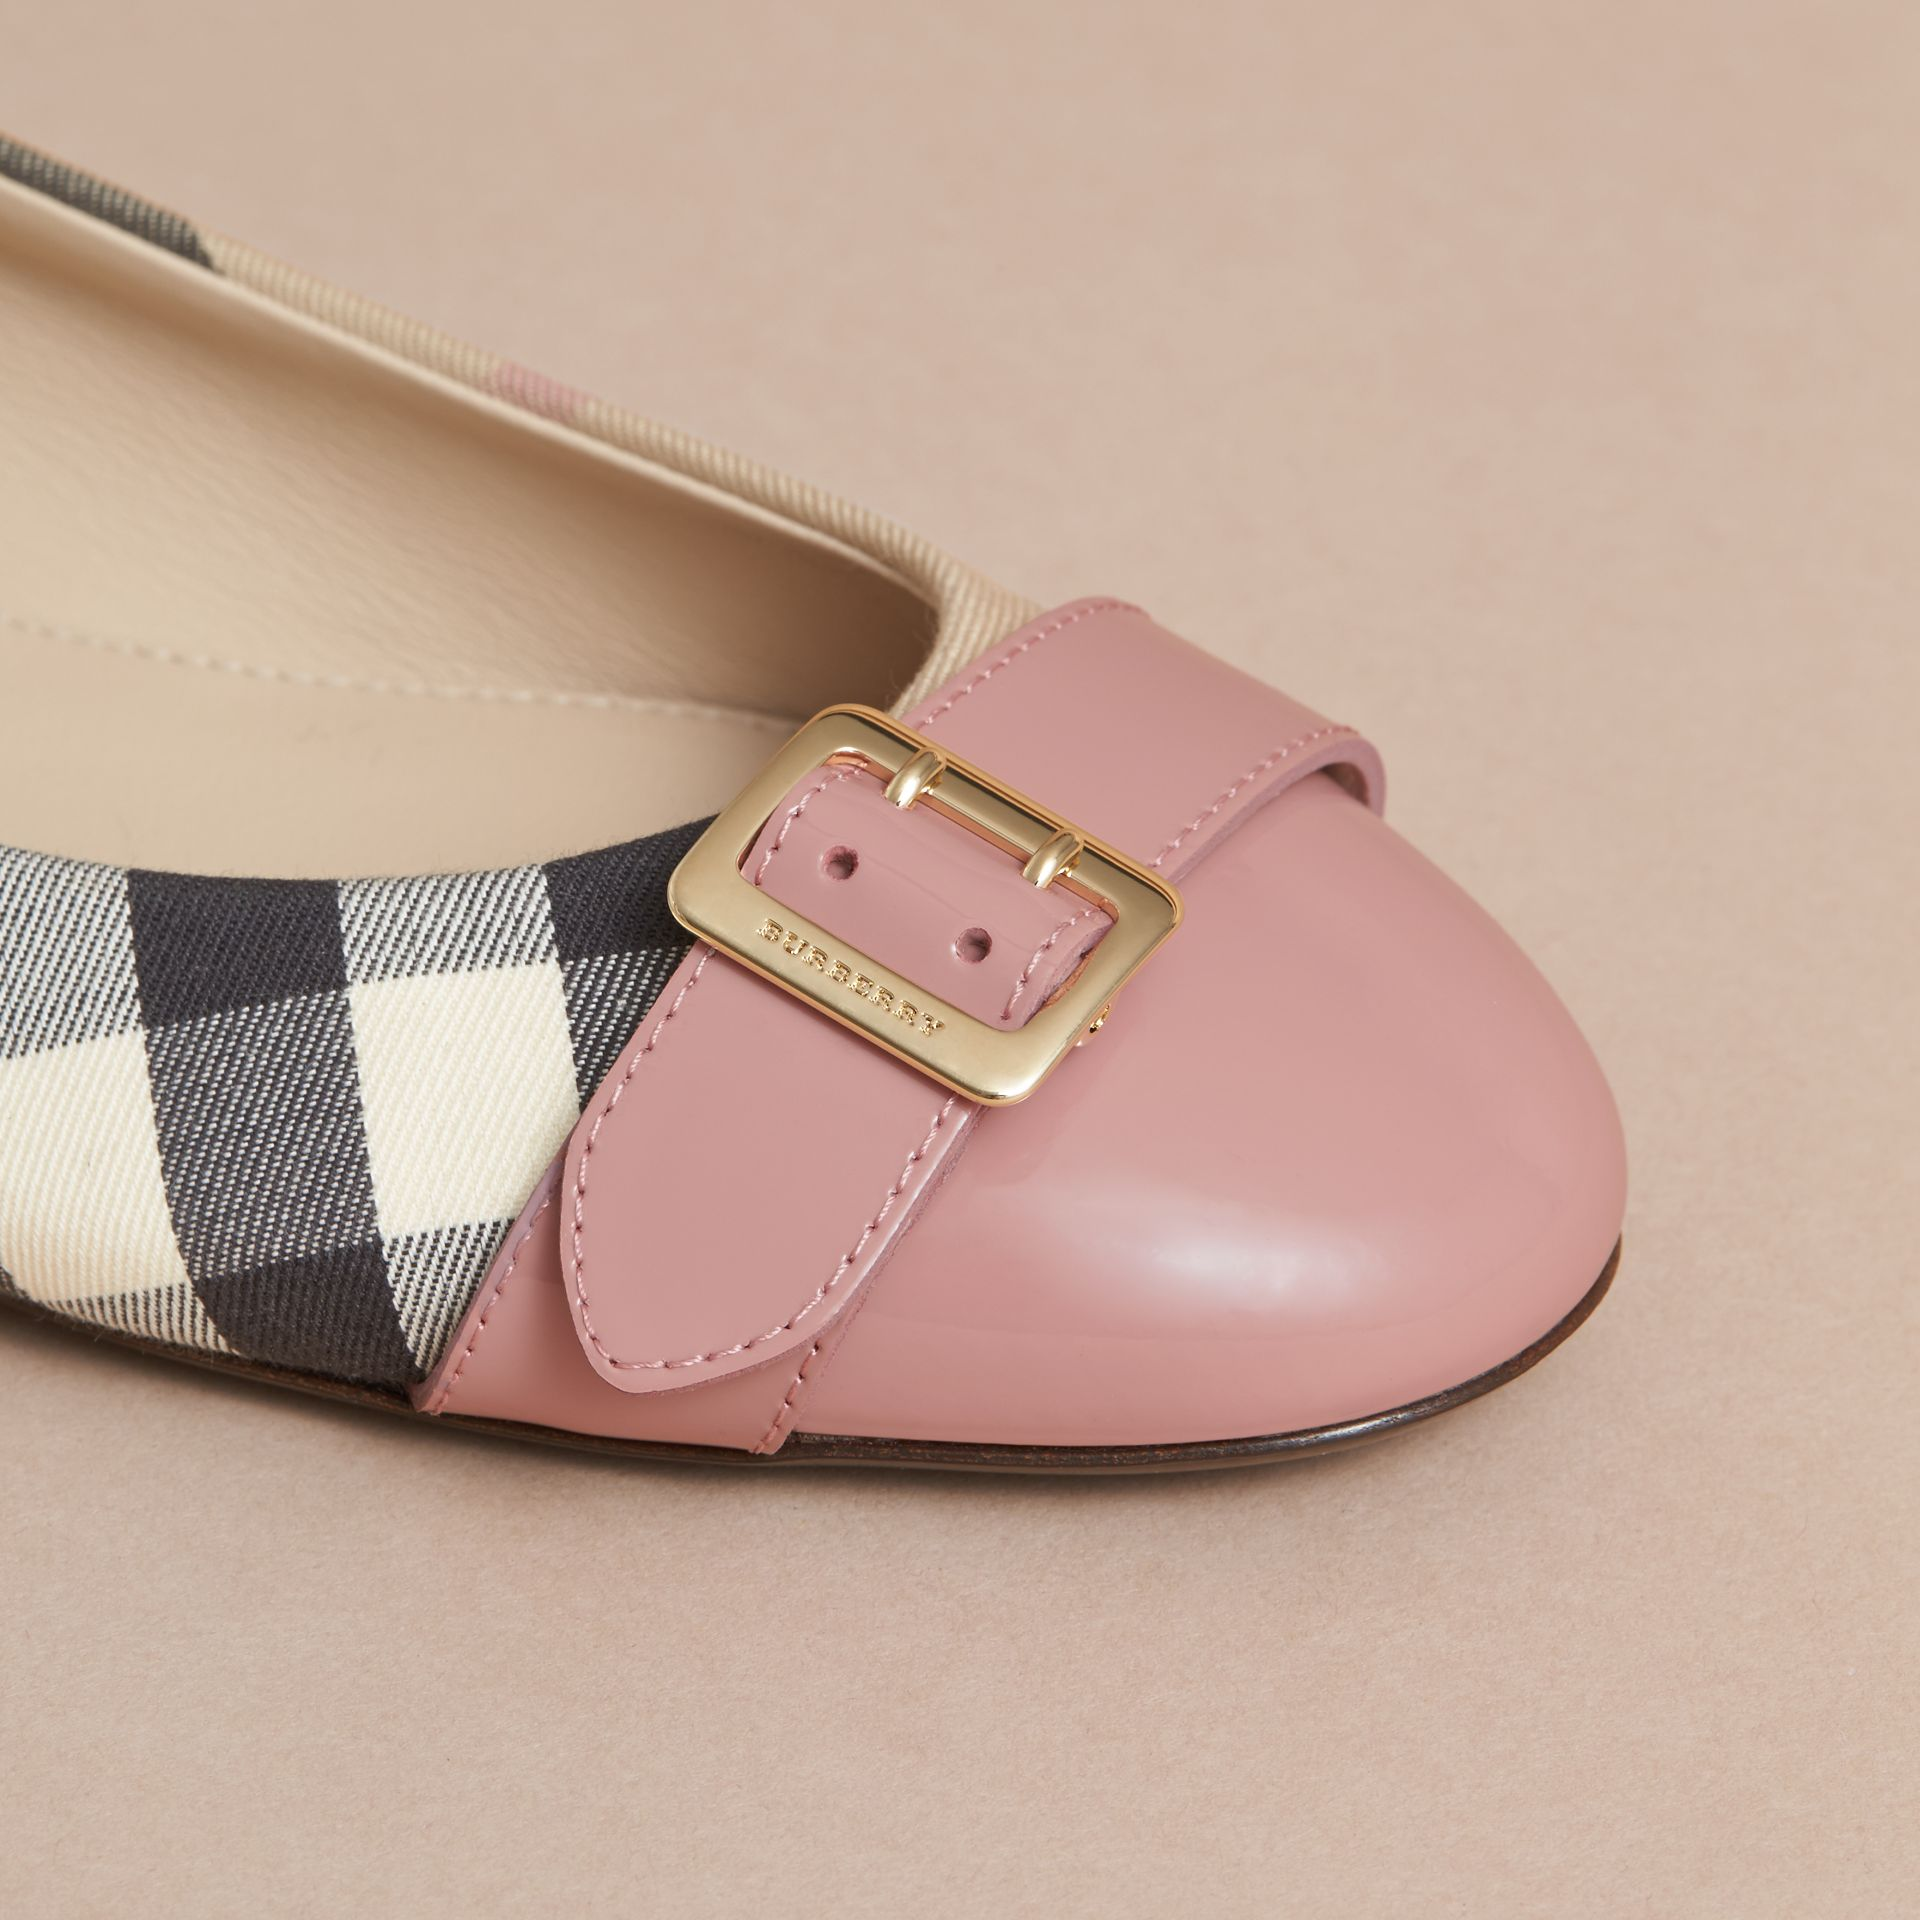 Buckle Detail Check and Patent Leather Ballerinas in Nude Pink - Women | Burberry - gallery image 2